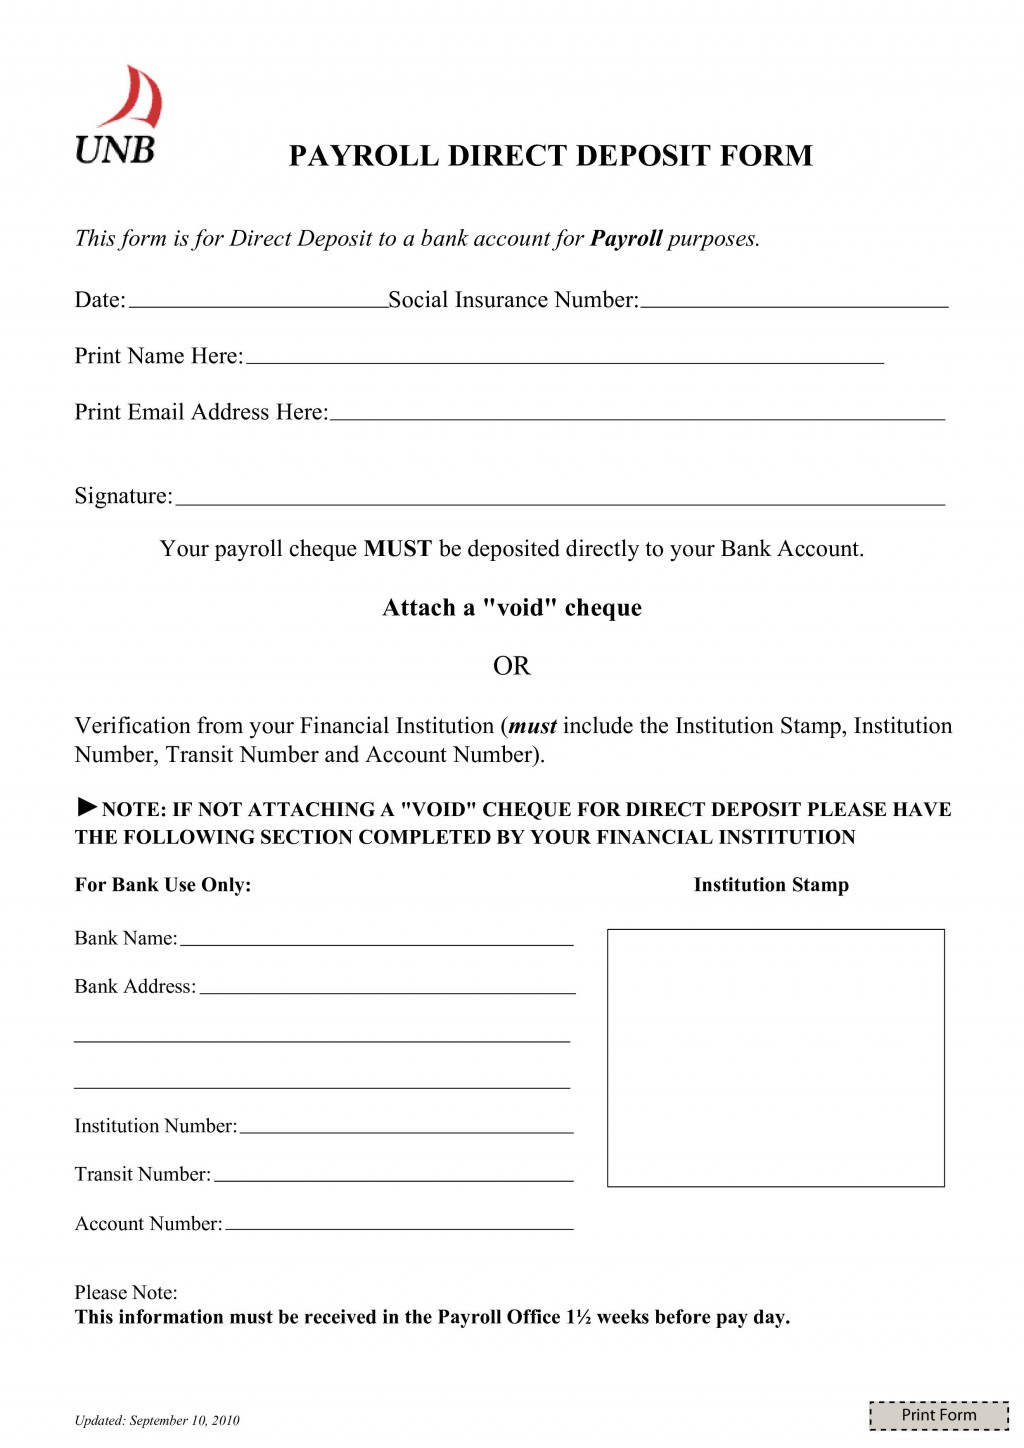 003 Magnificent Direct Deposit Form Template High Definition  Multiple Account Ach AuthorizationLarge